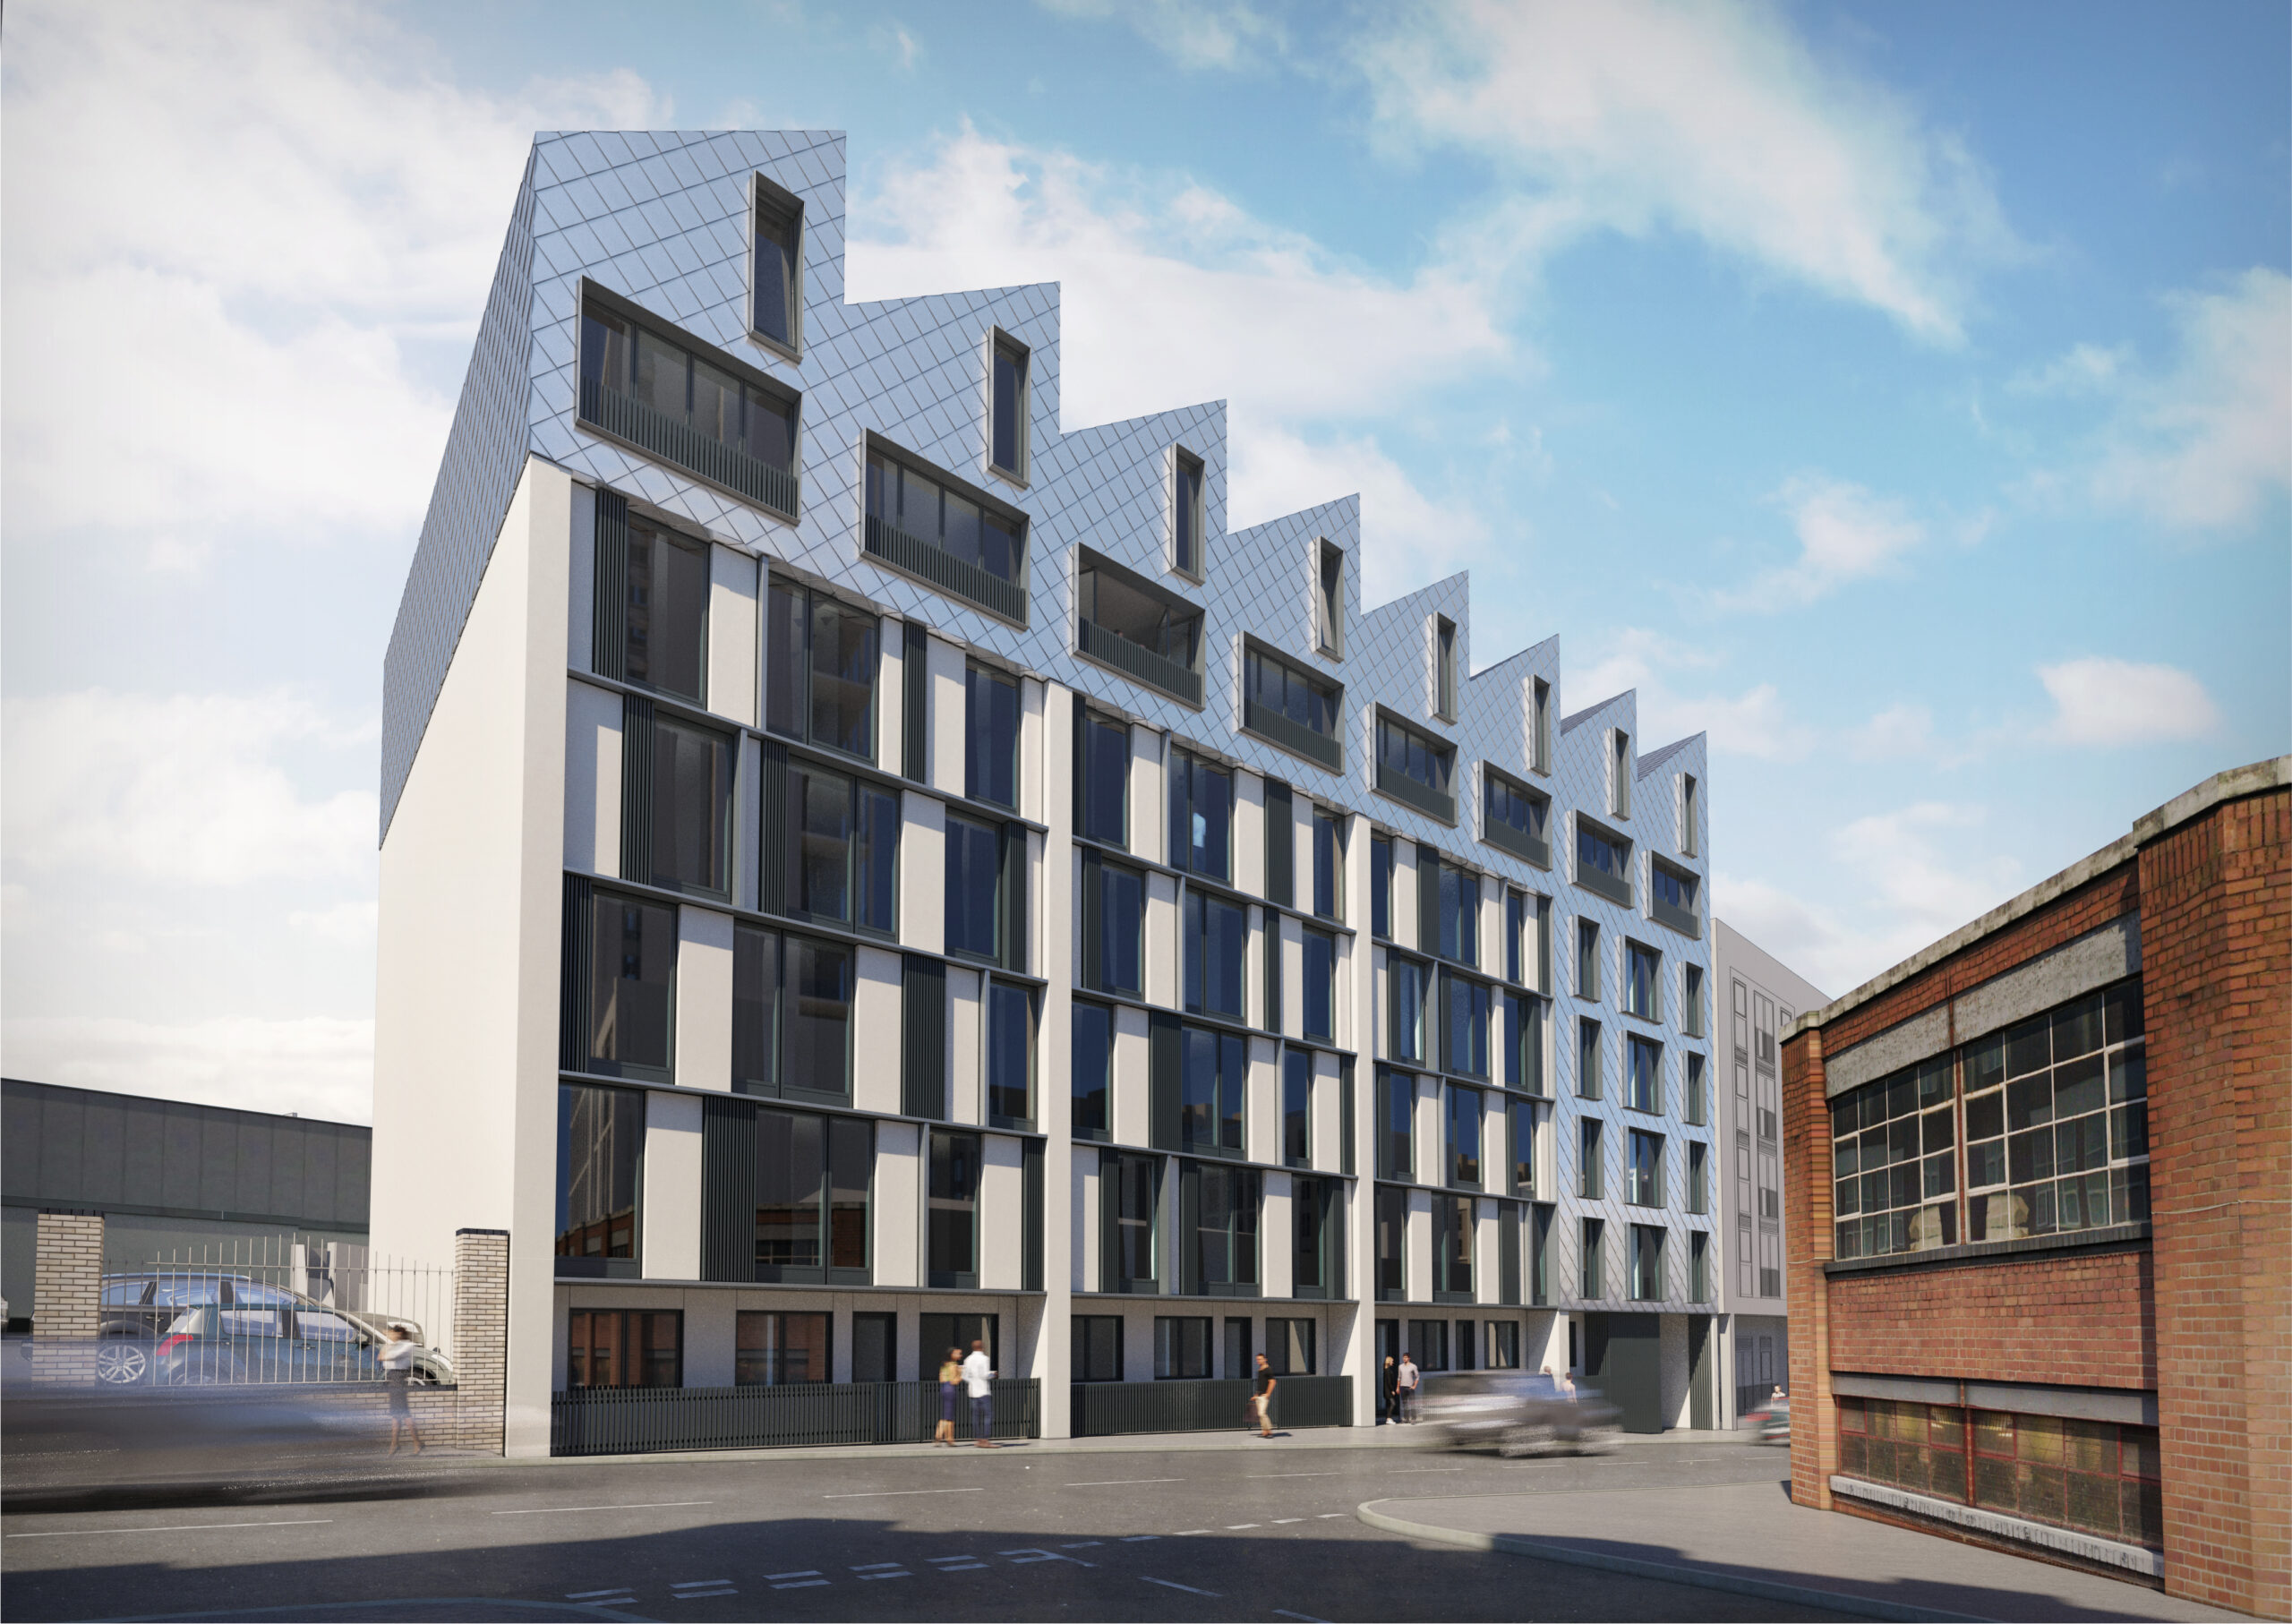 APEX LOFTS | Digbeth, Birmingham